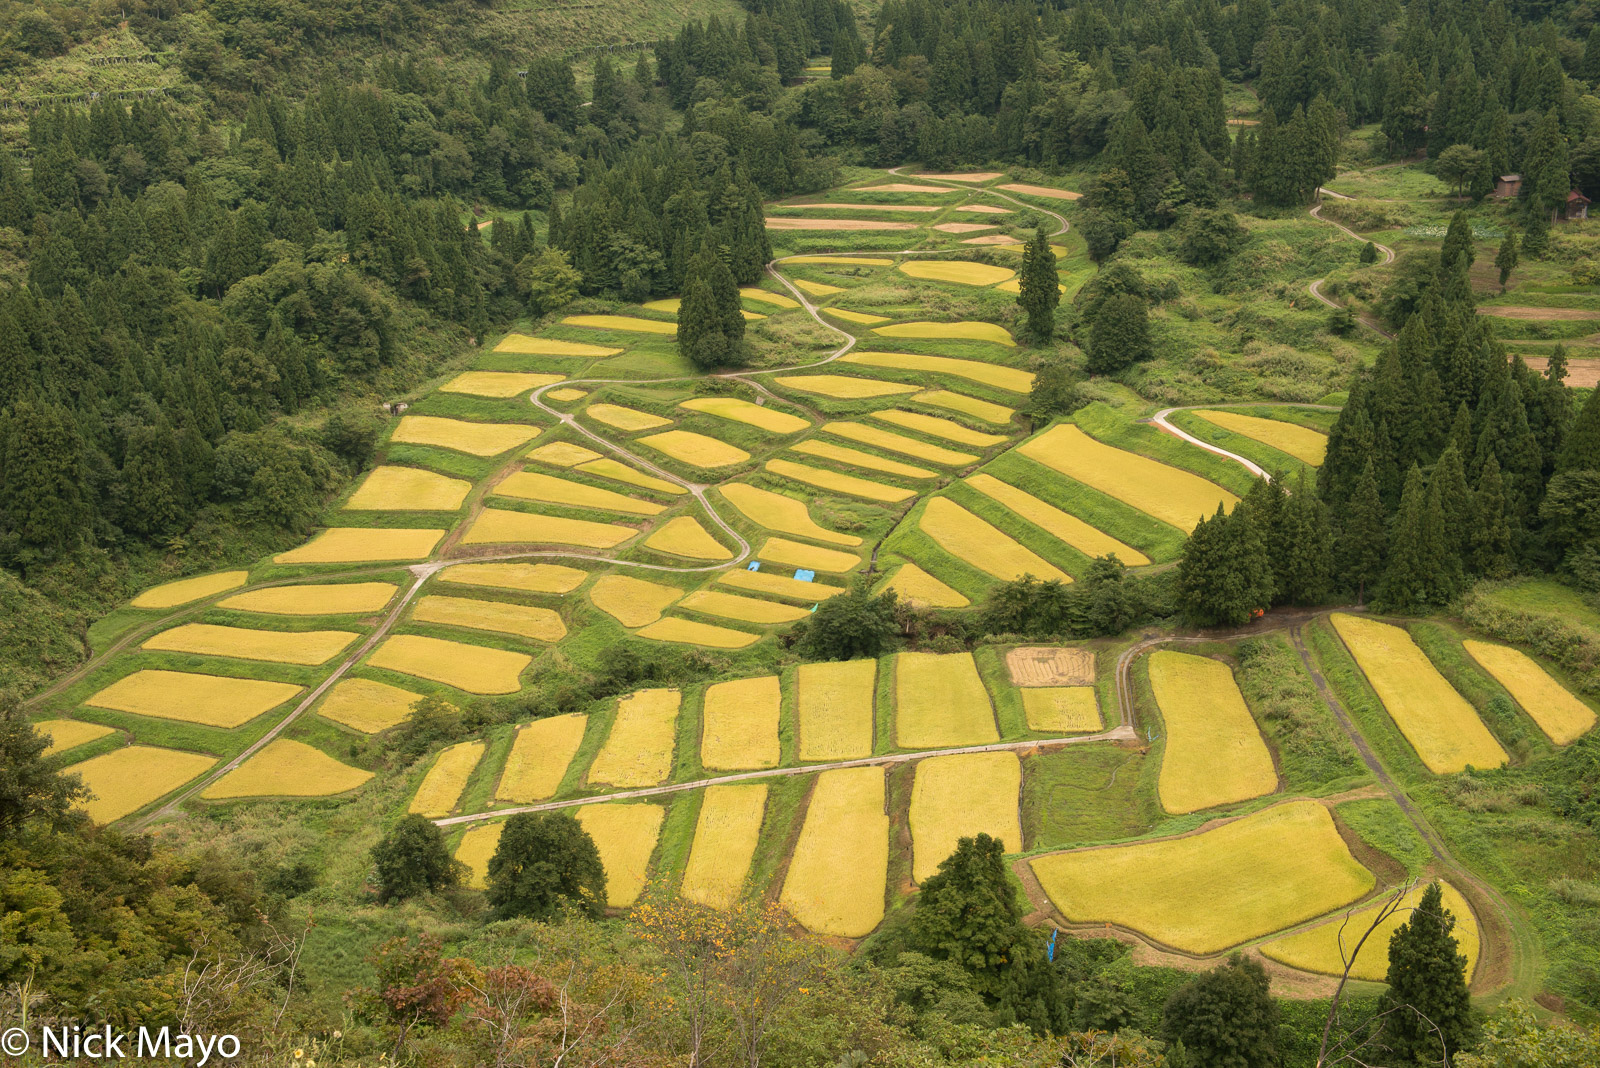 The terraced paddy rice fields at Keiji.